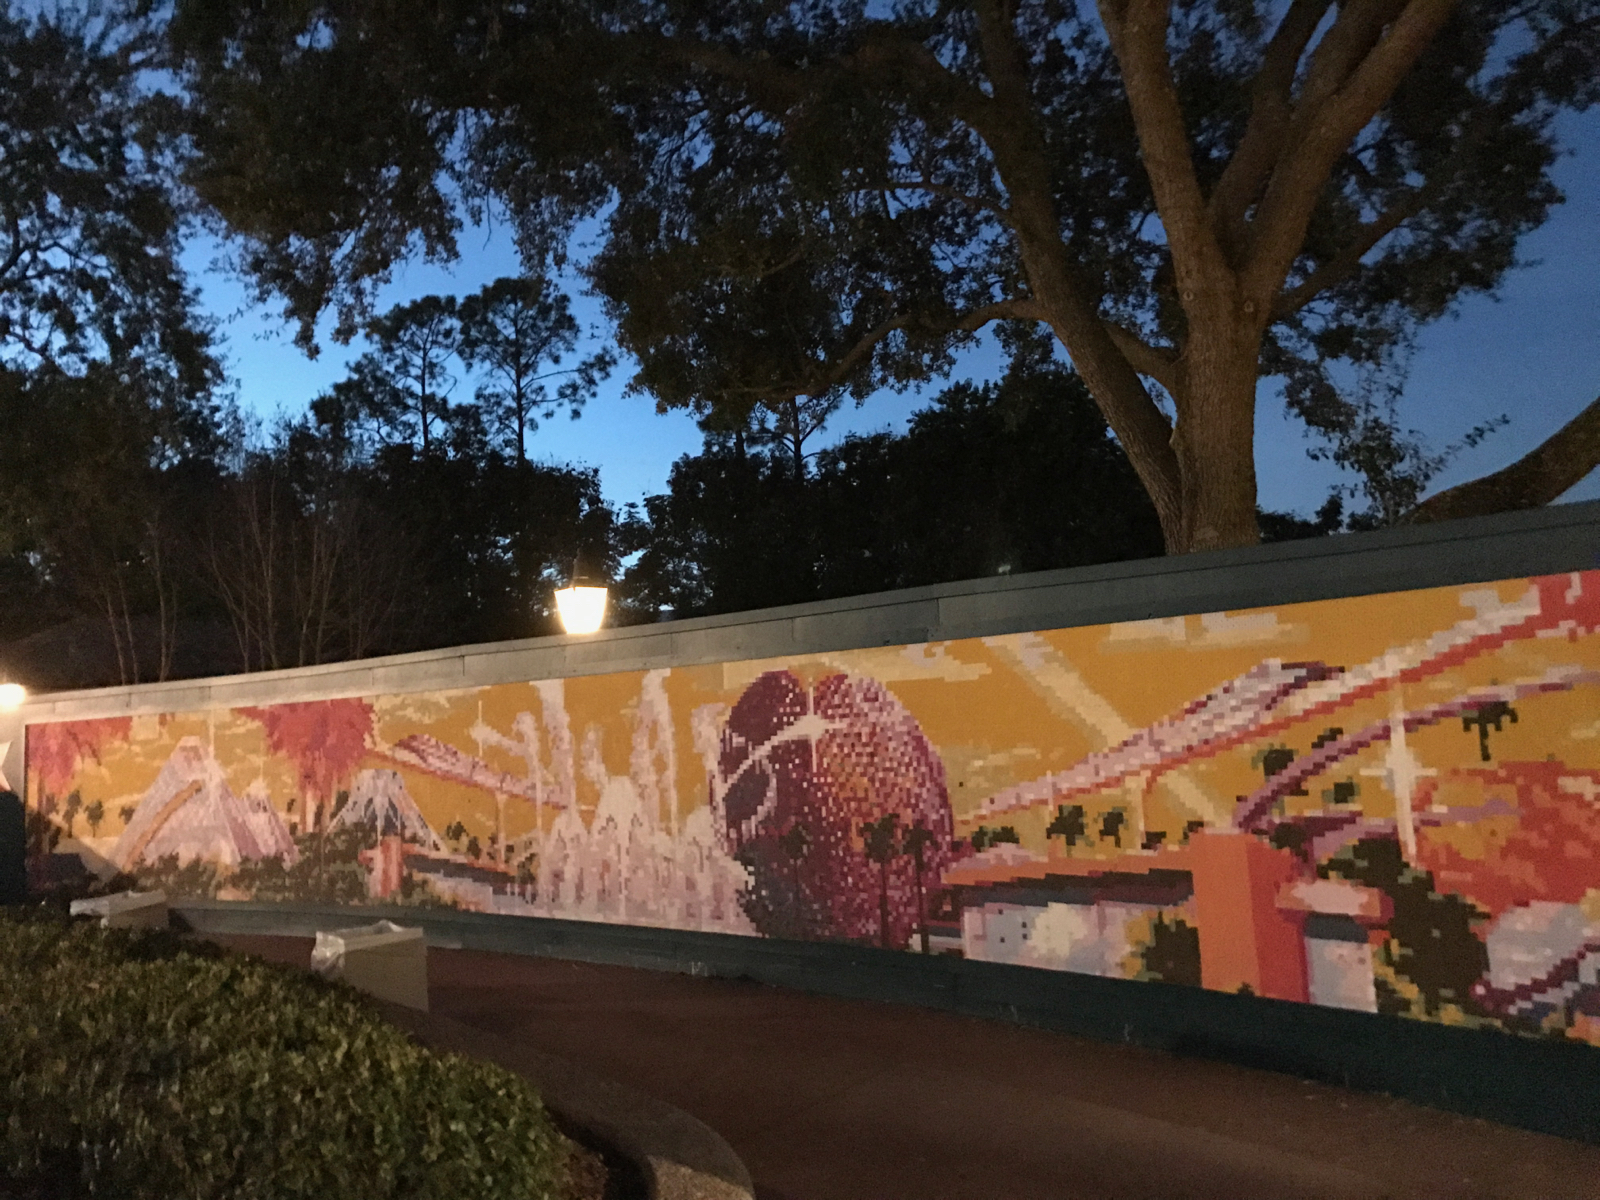 mouseplanet walt disney world resort update for january 24 30 the paint by number mural